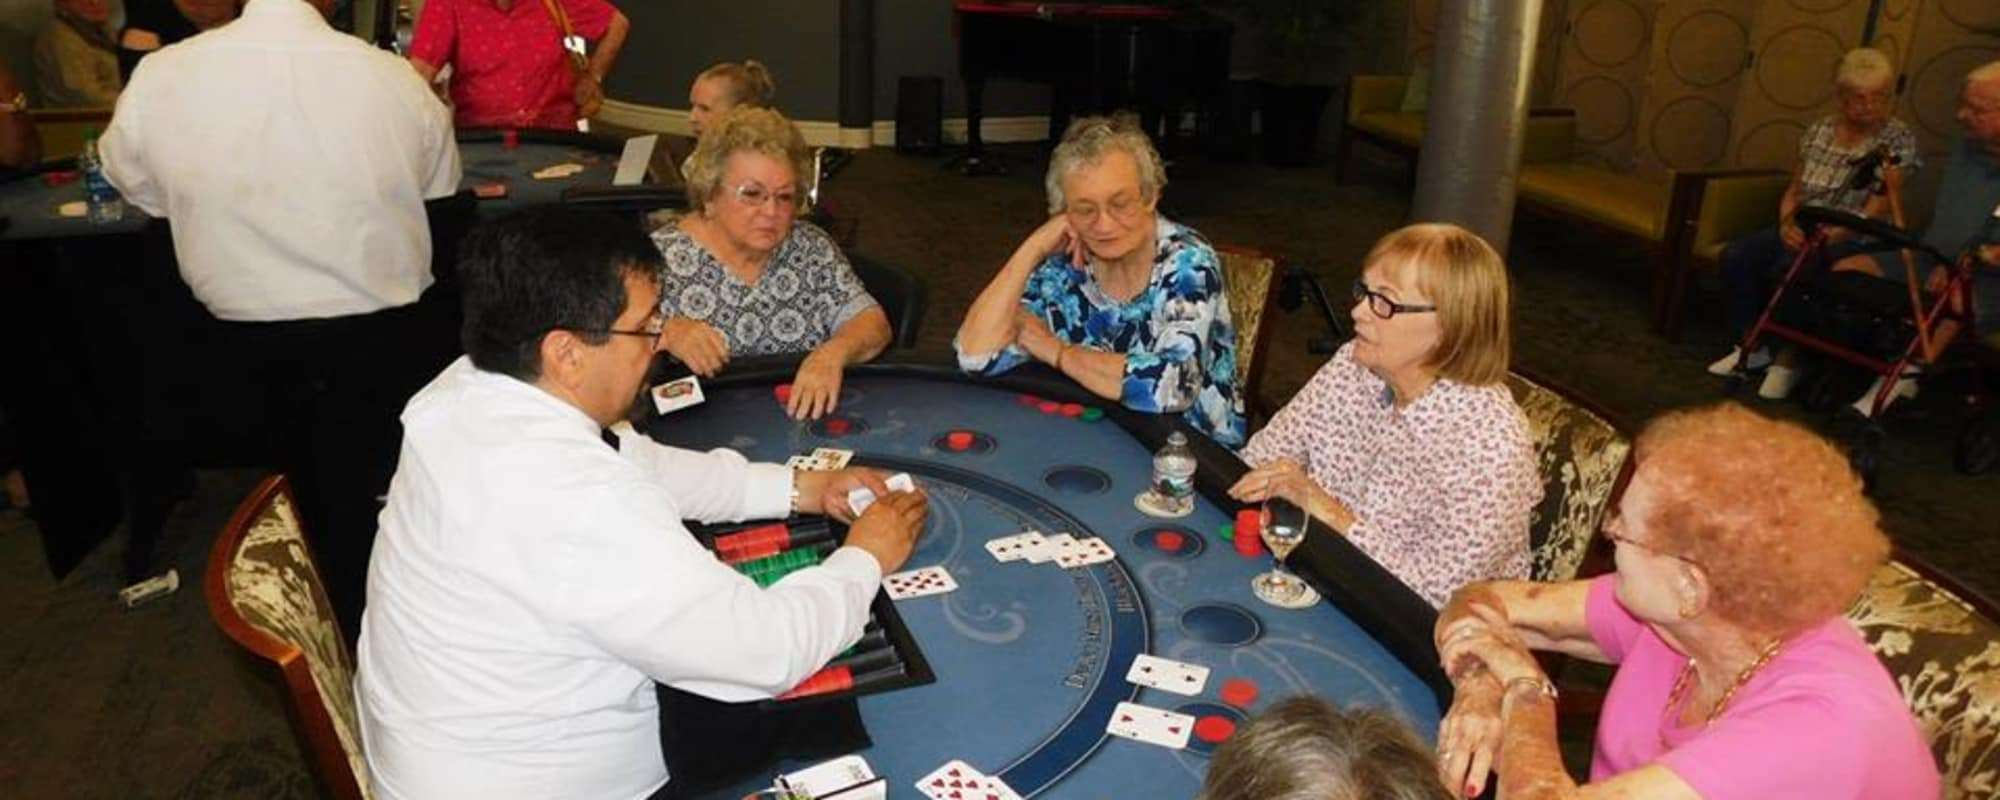 Seniors playing poker at Dale Commons in Modesto, California